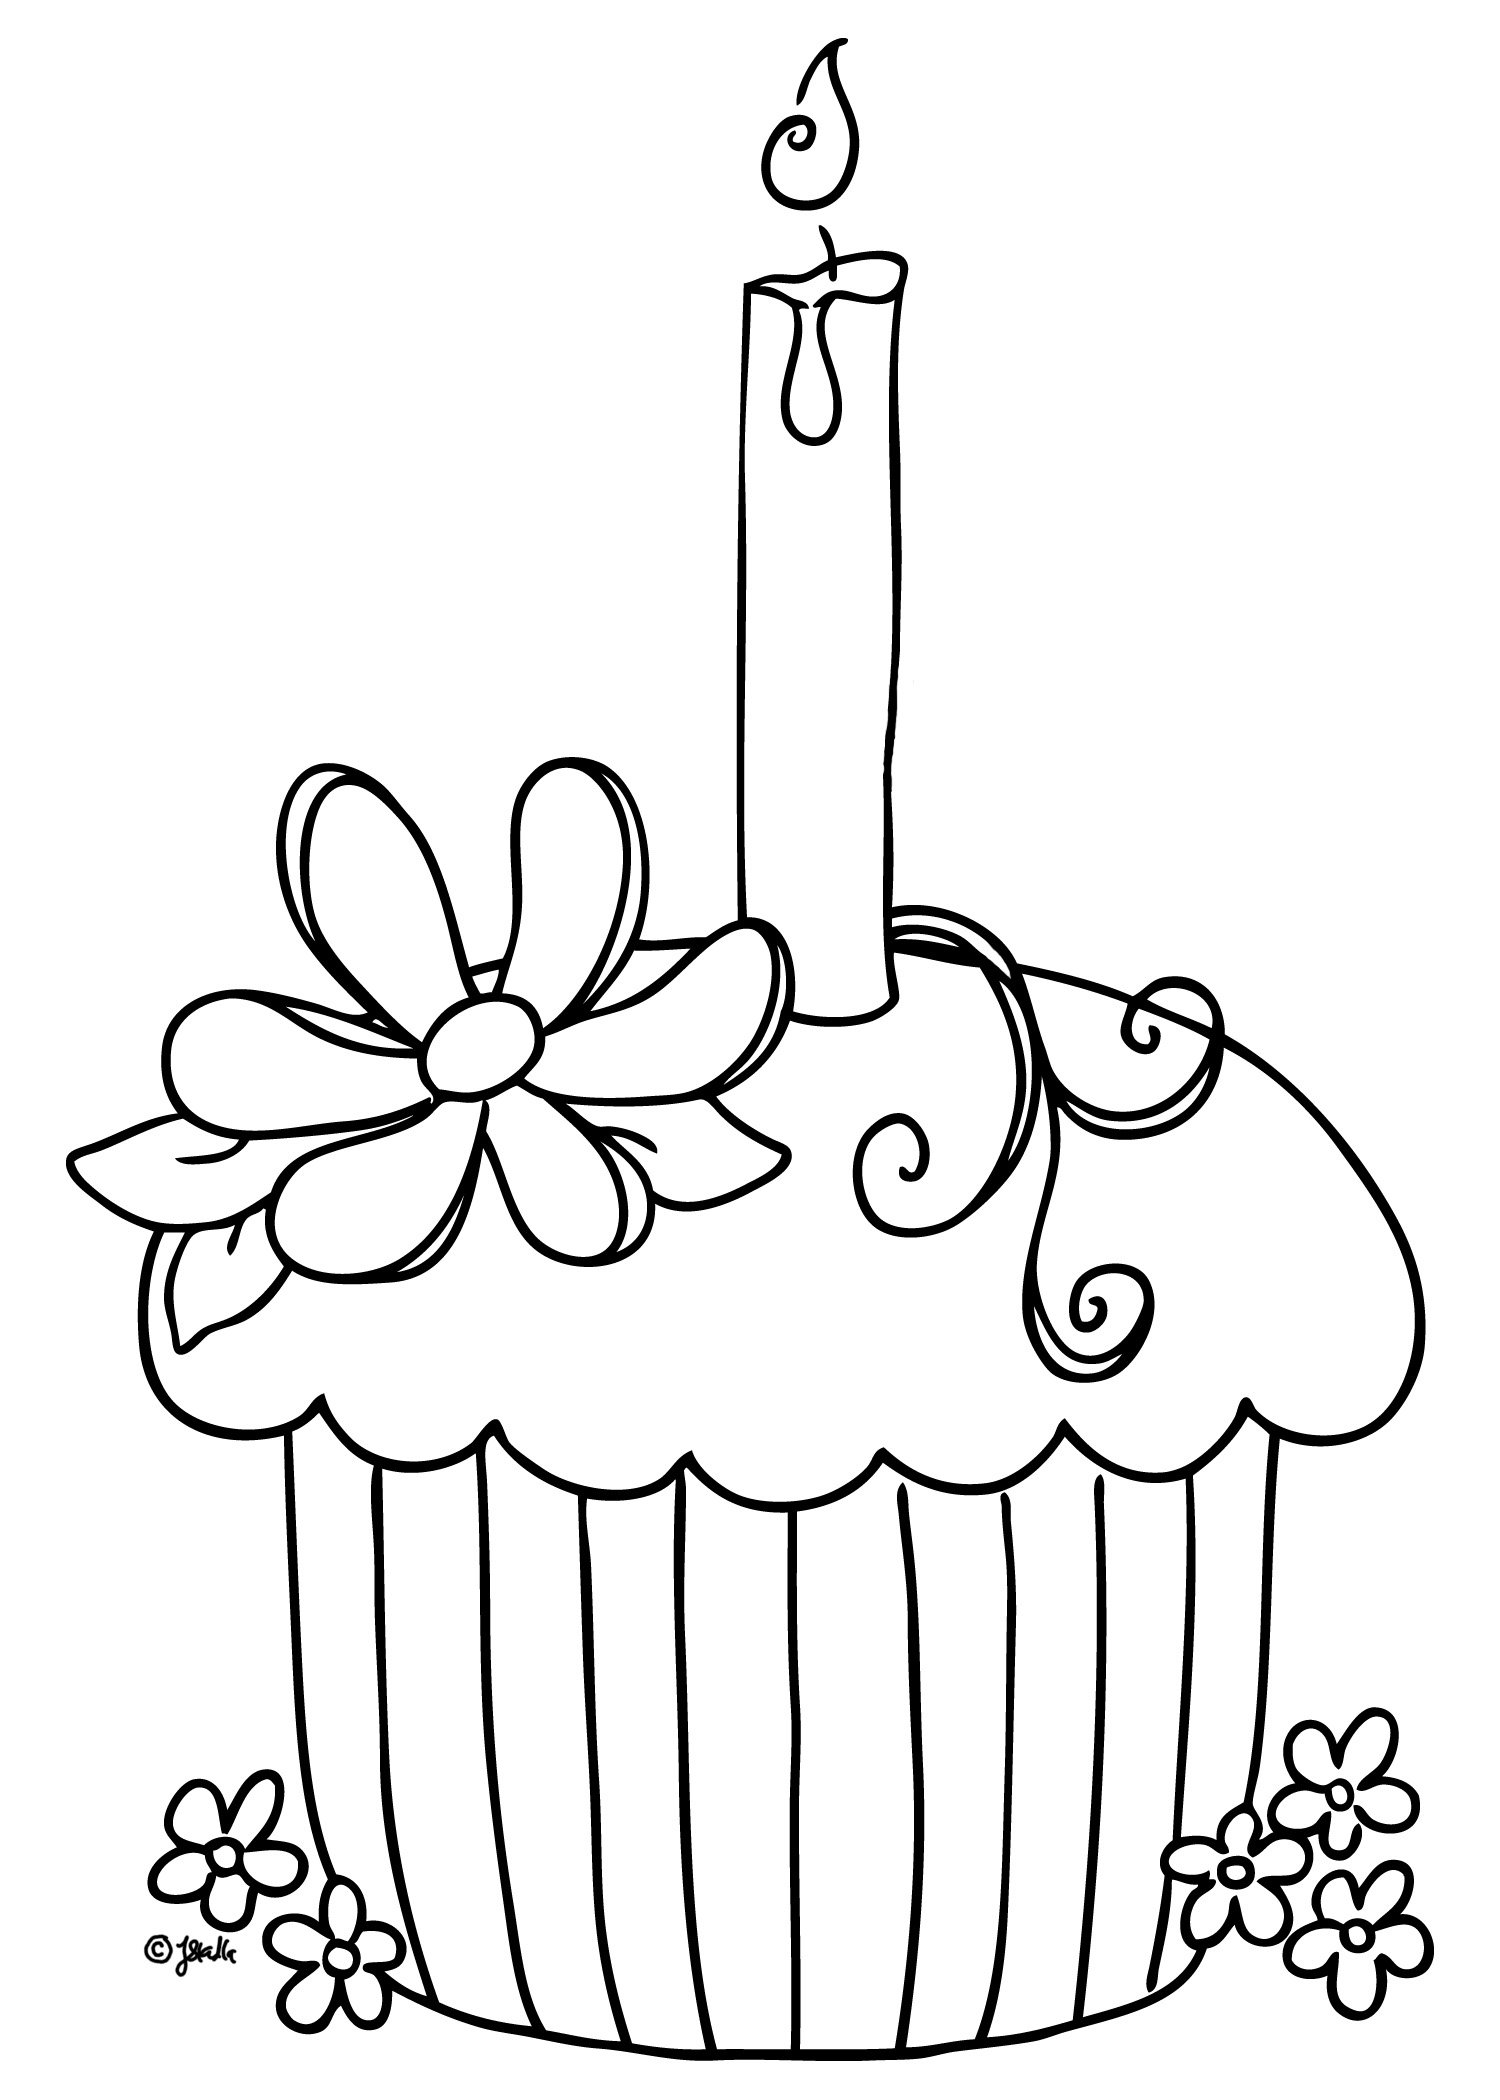 Free Printable Birthday Cupcake Coloring Pages